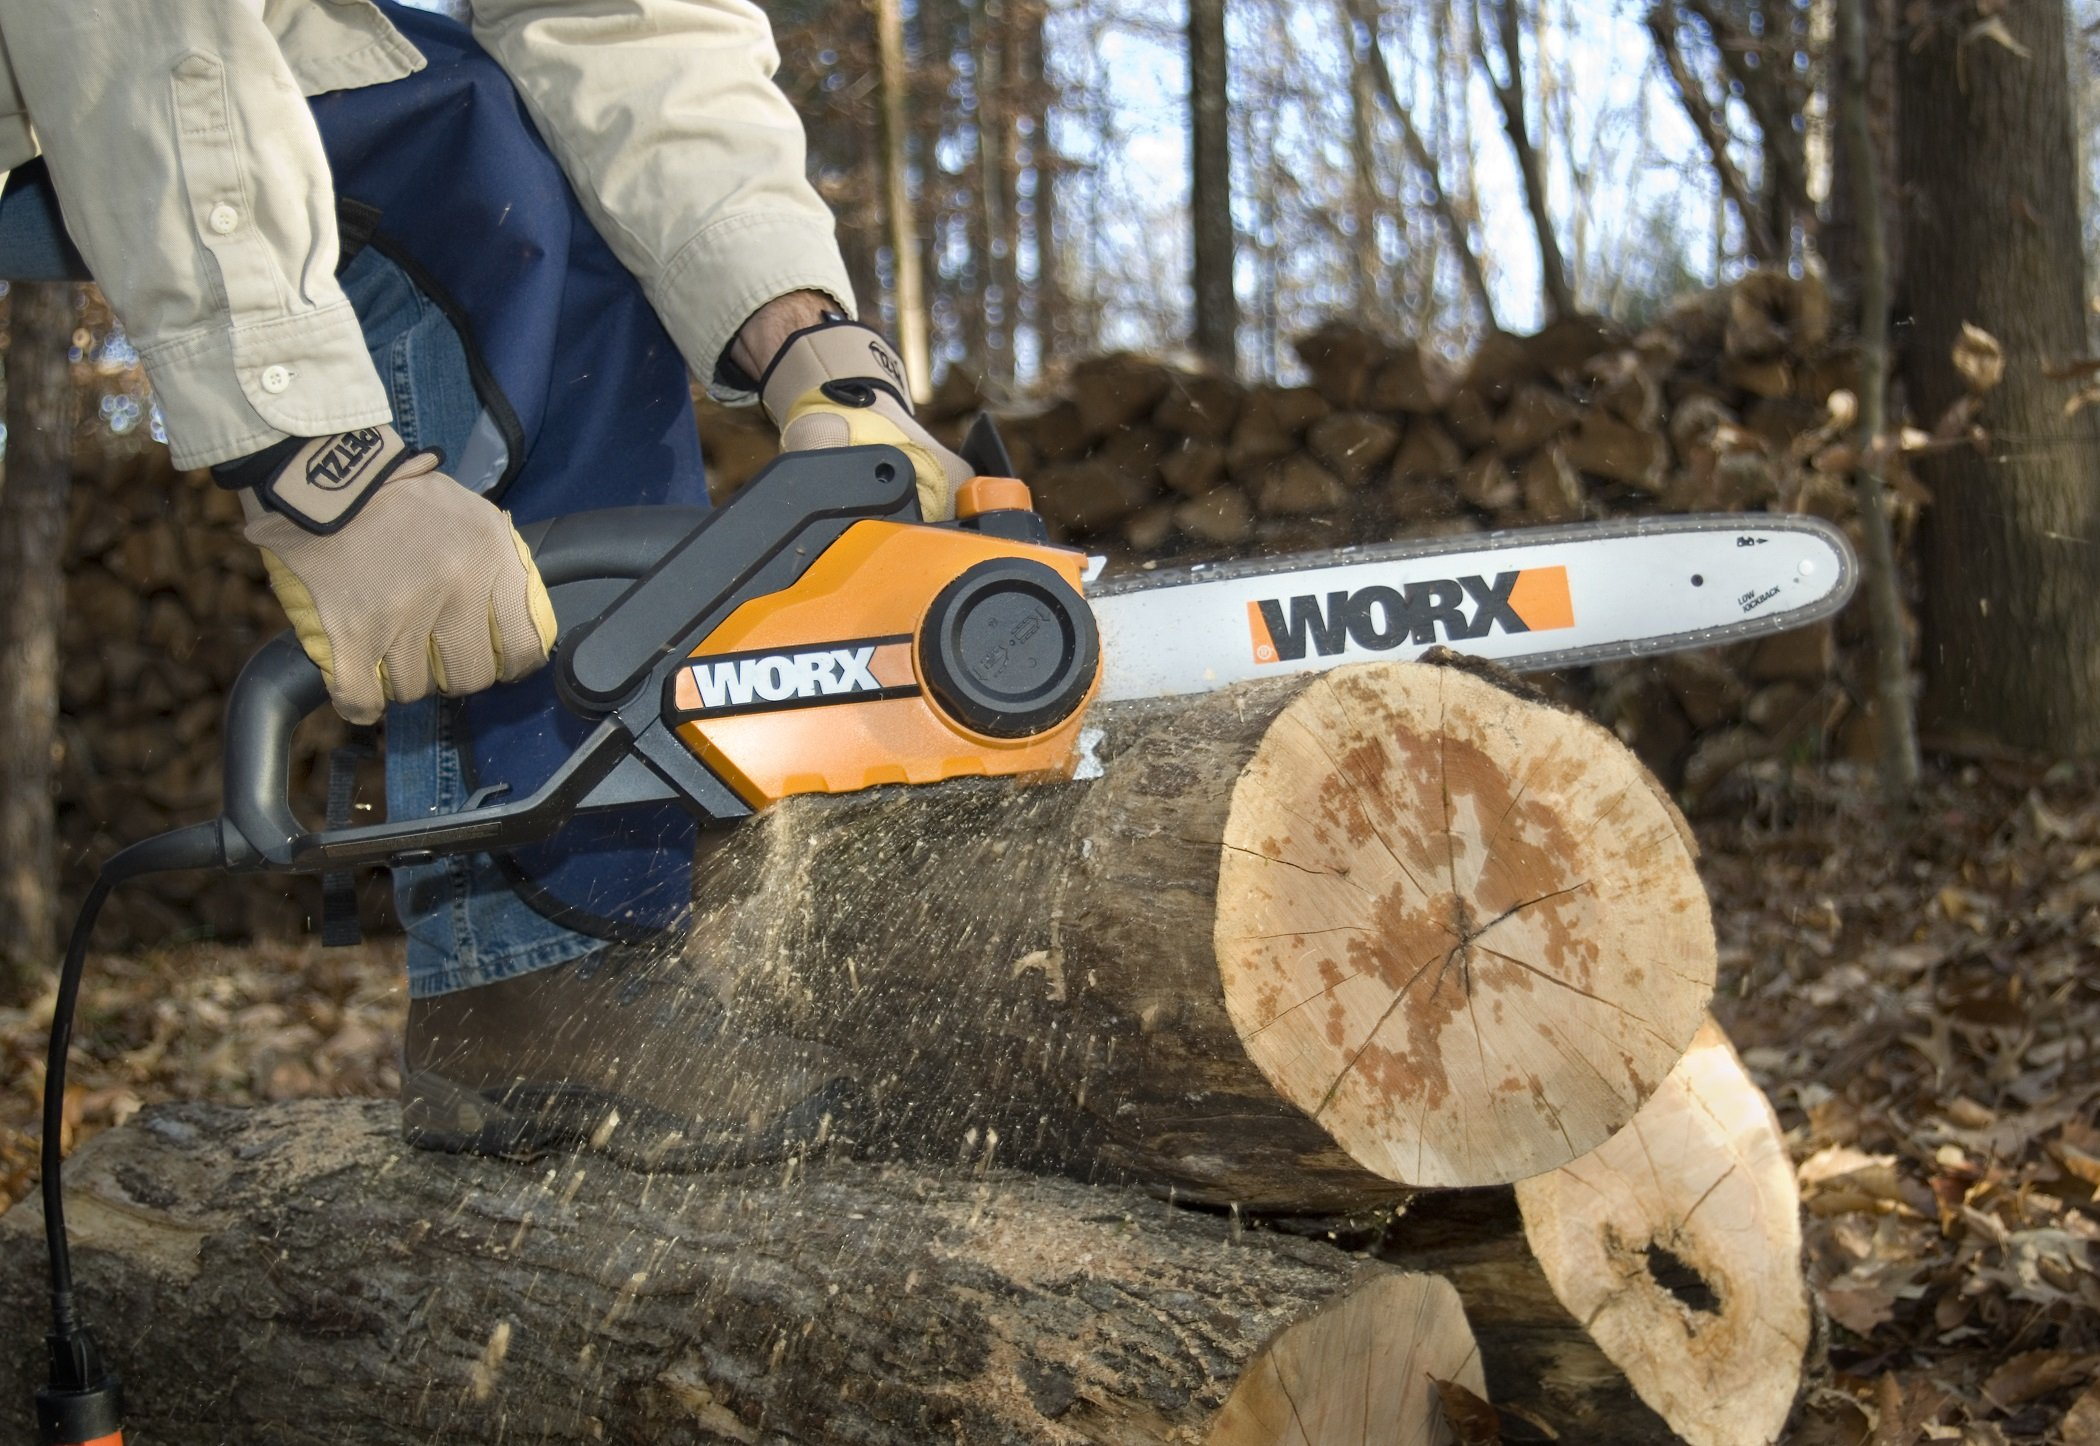 WORX Electric Chainsaw